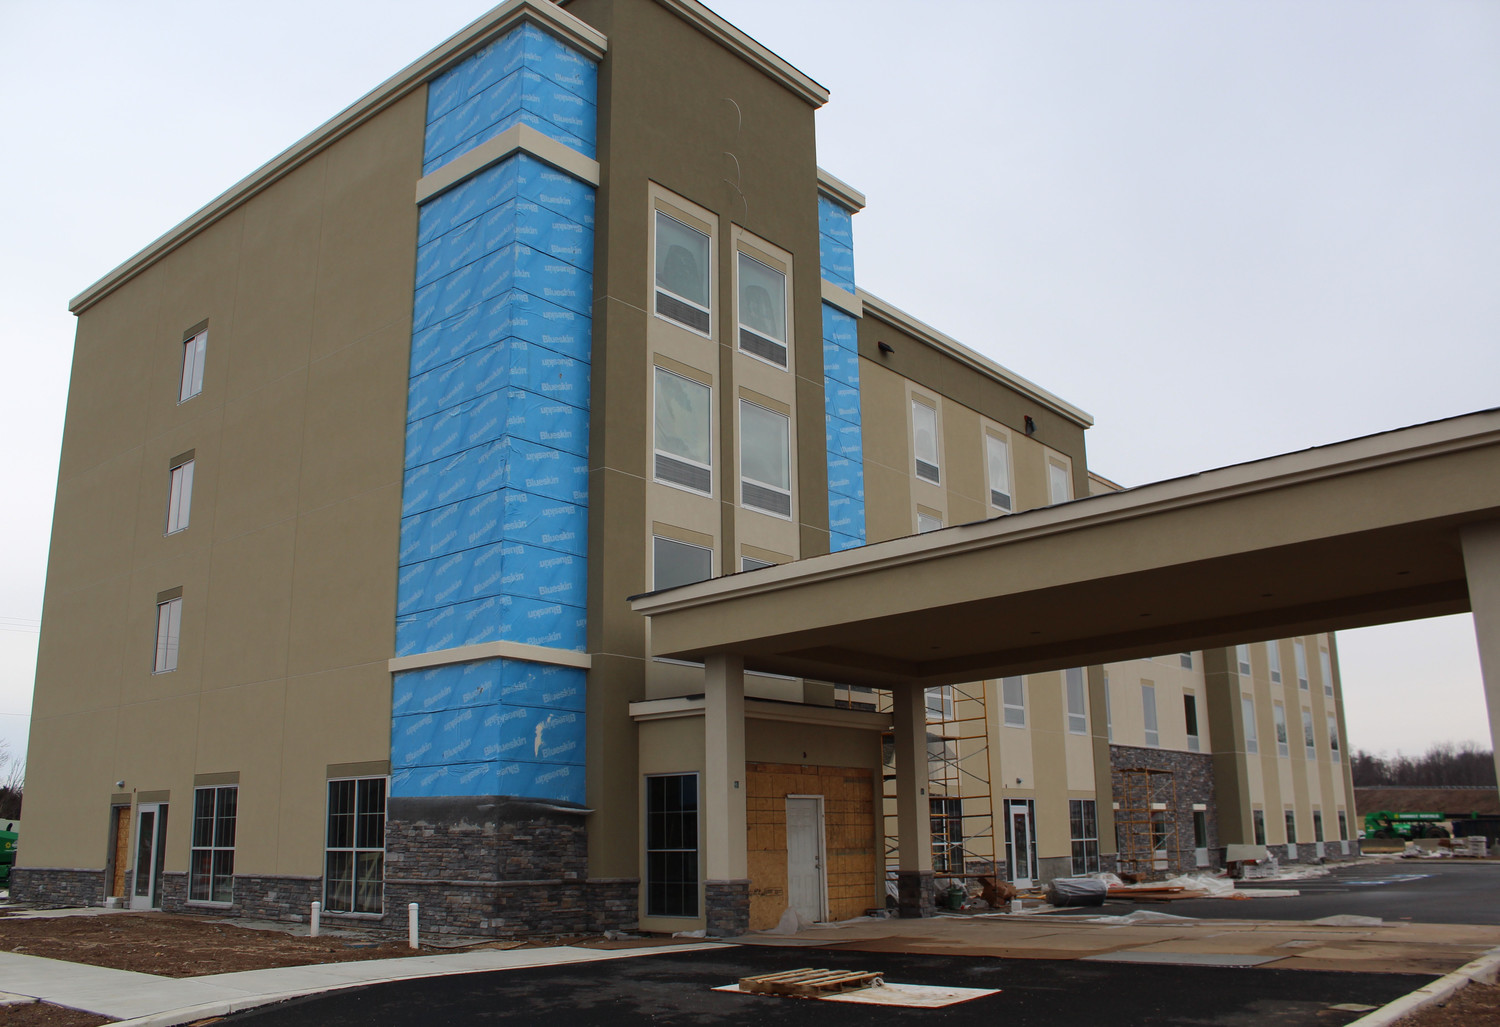 The Comfort Inn & Suites-Harrisburg Airport-Hershey South is scheduled to open this spring.